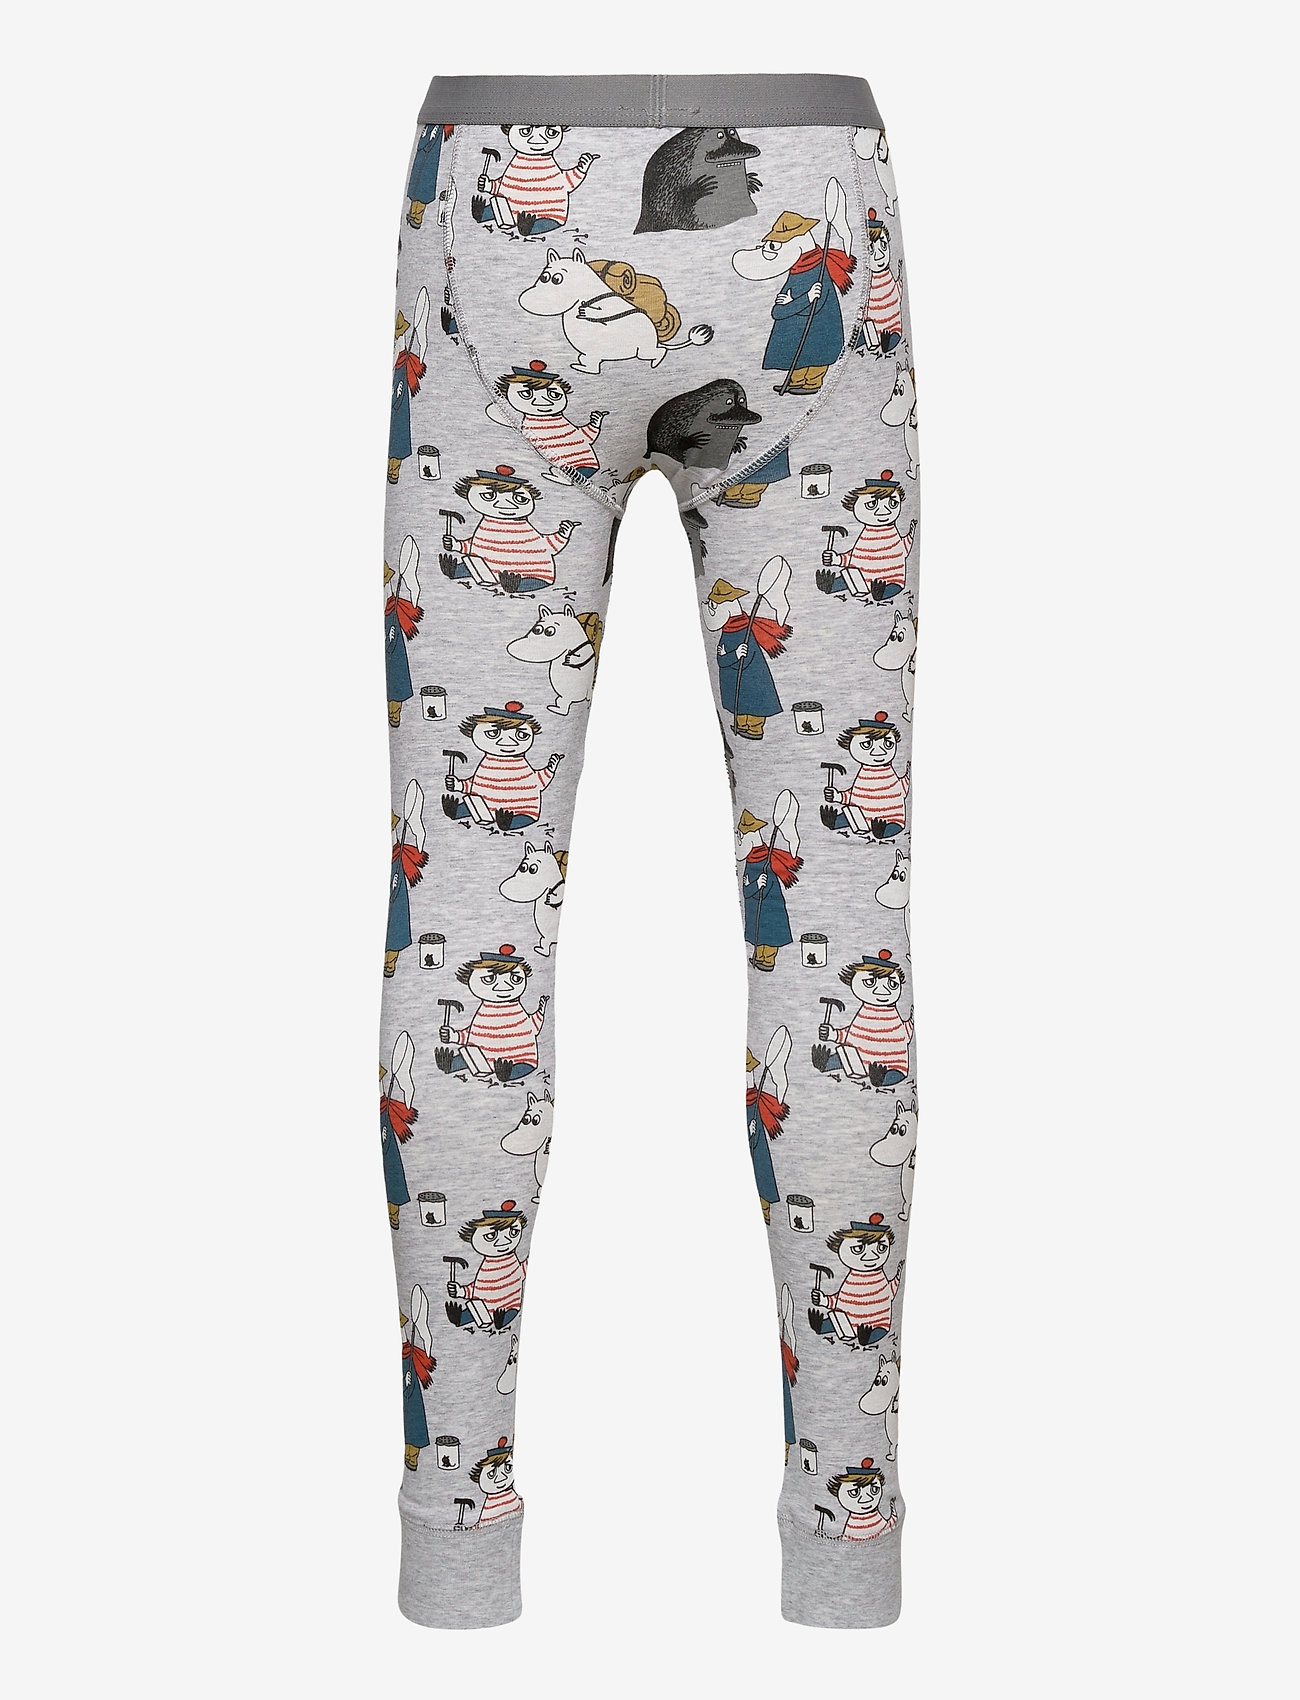 Mumin - YIKES LONG JOHNS - basislag - grey - 1